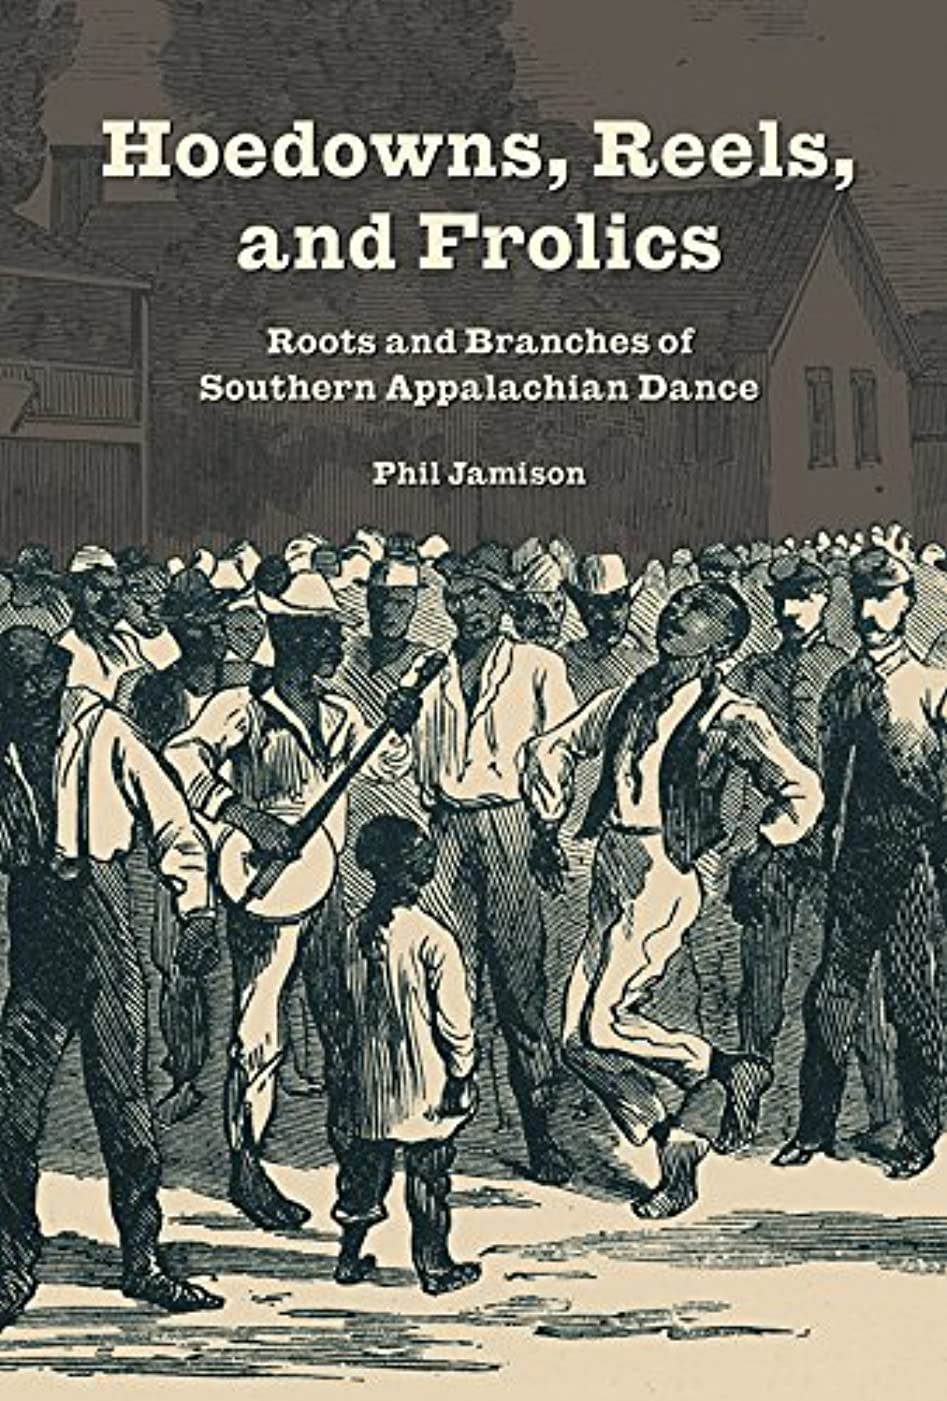 Hoedowns, Reels, and Frolics: Roots and Branches of Southern Appalachian Dance (Music in American Life) (English Edition)